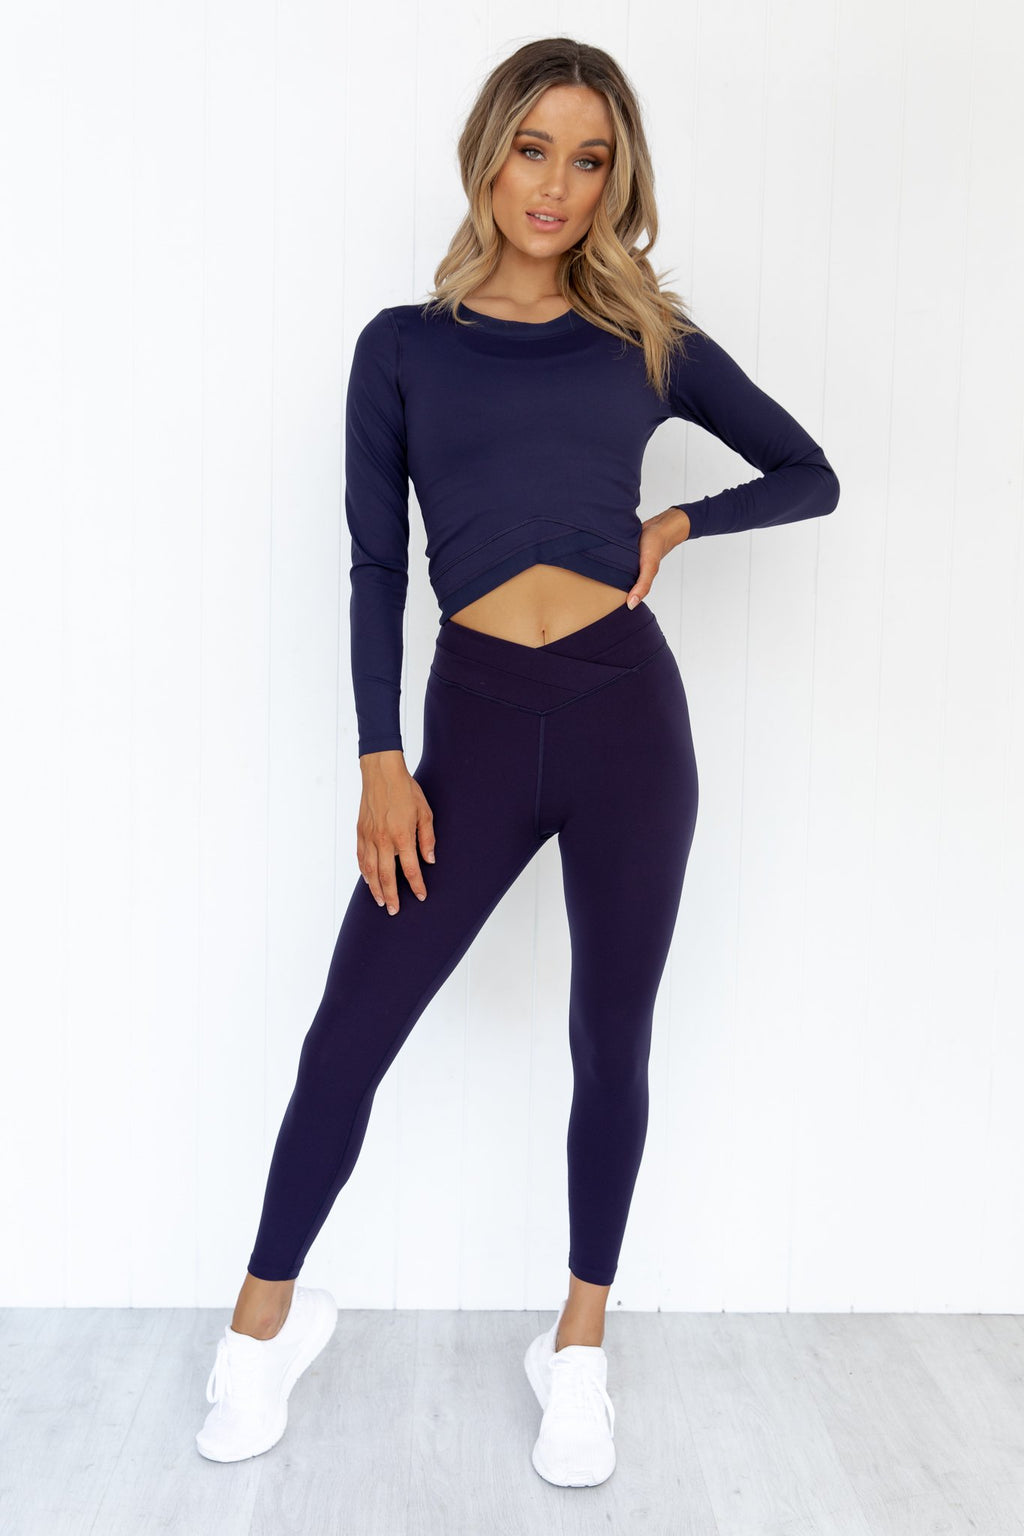 Wrap Waistband Ankle Biter Tight - PURE DASH